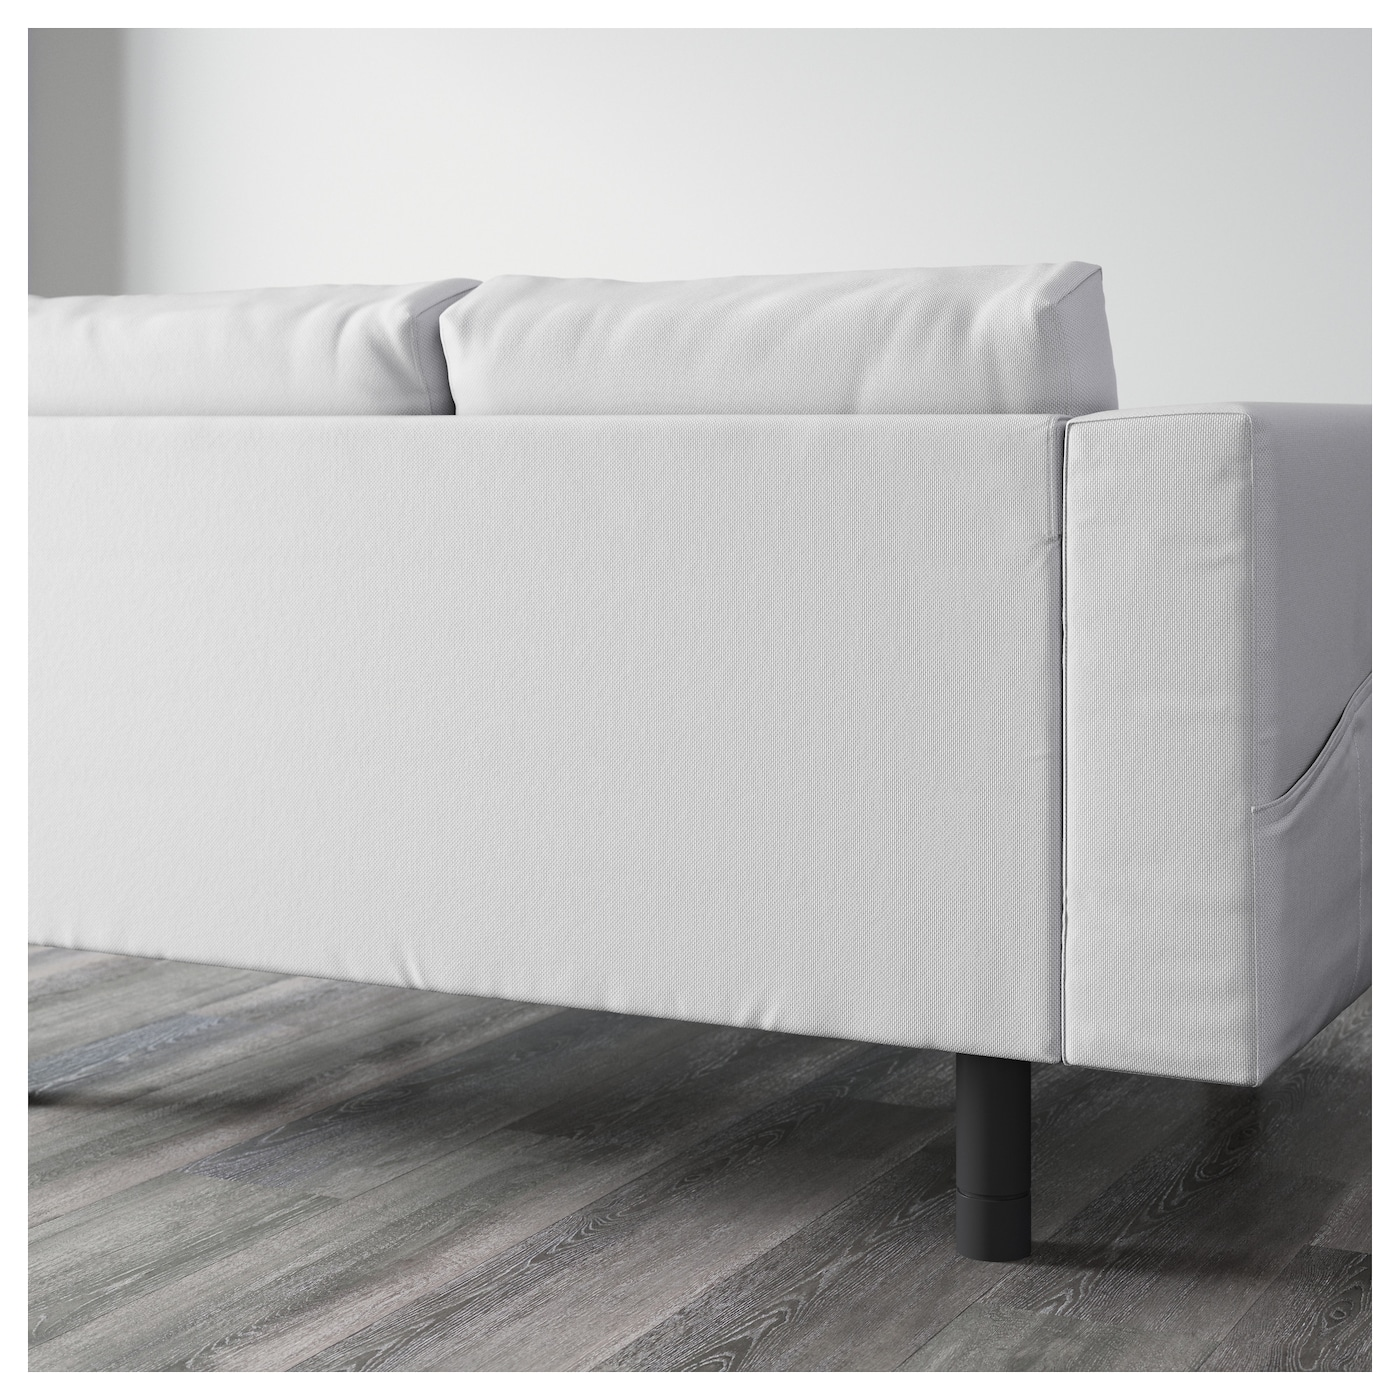 NORSBORG 9 seat sofa U shaped Finnsta white grey IKEA